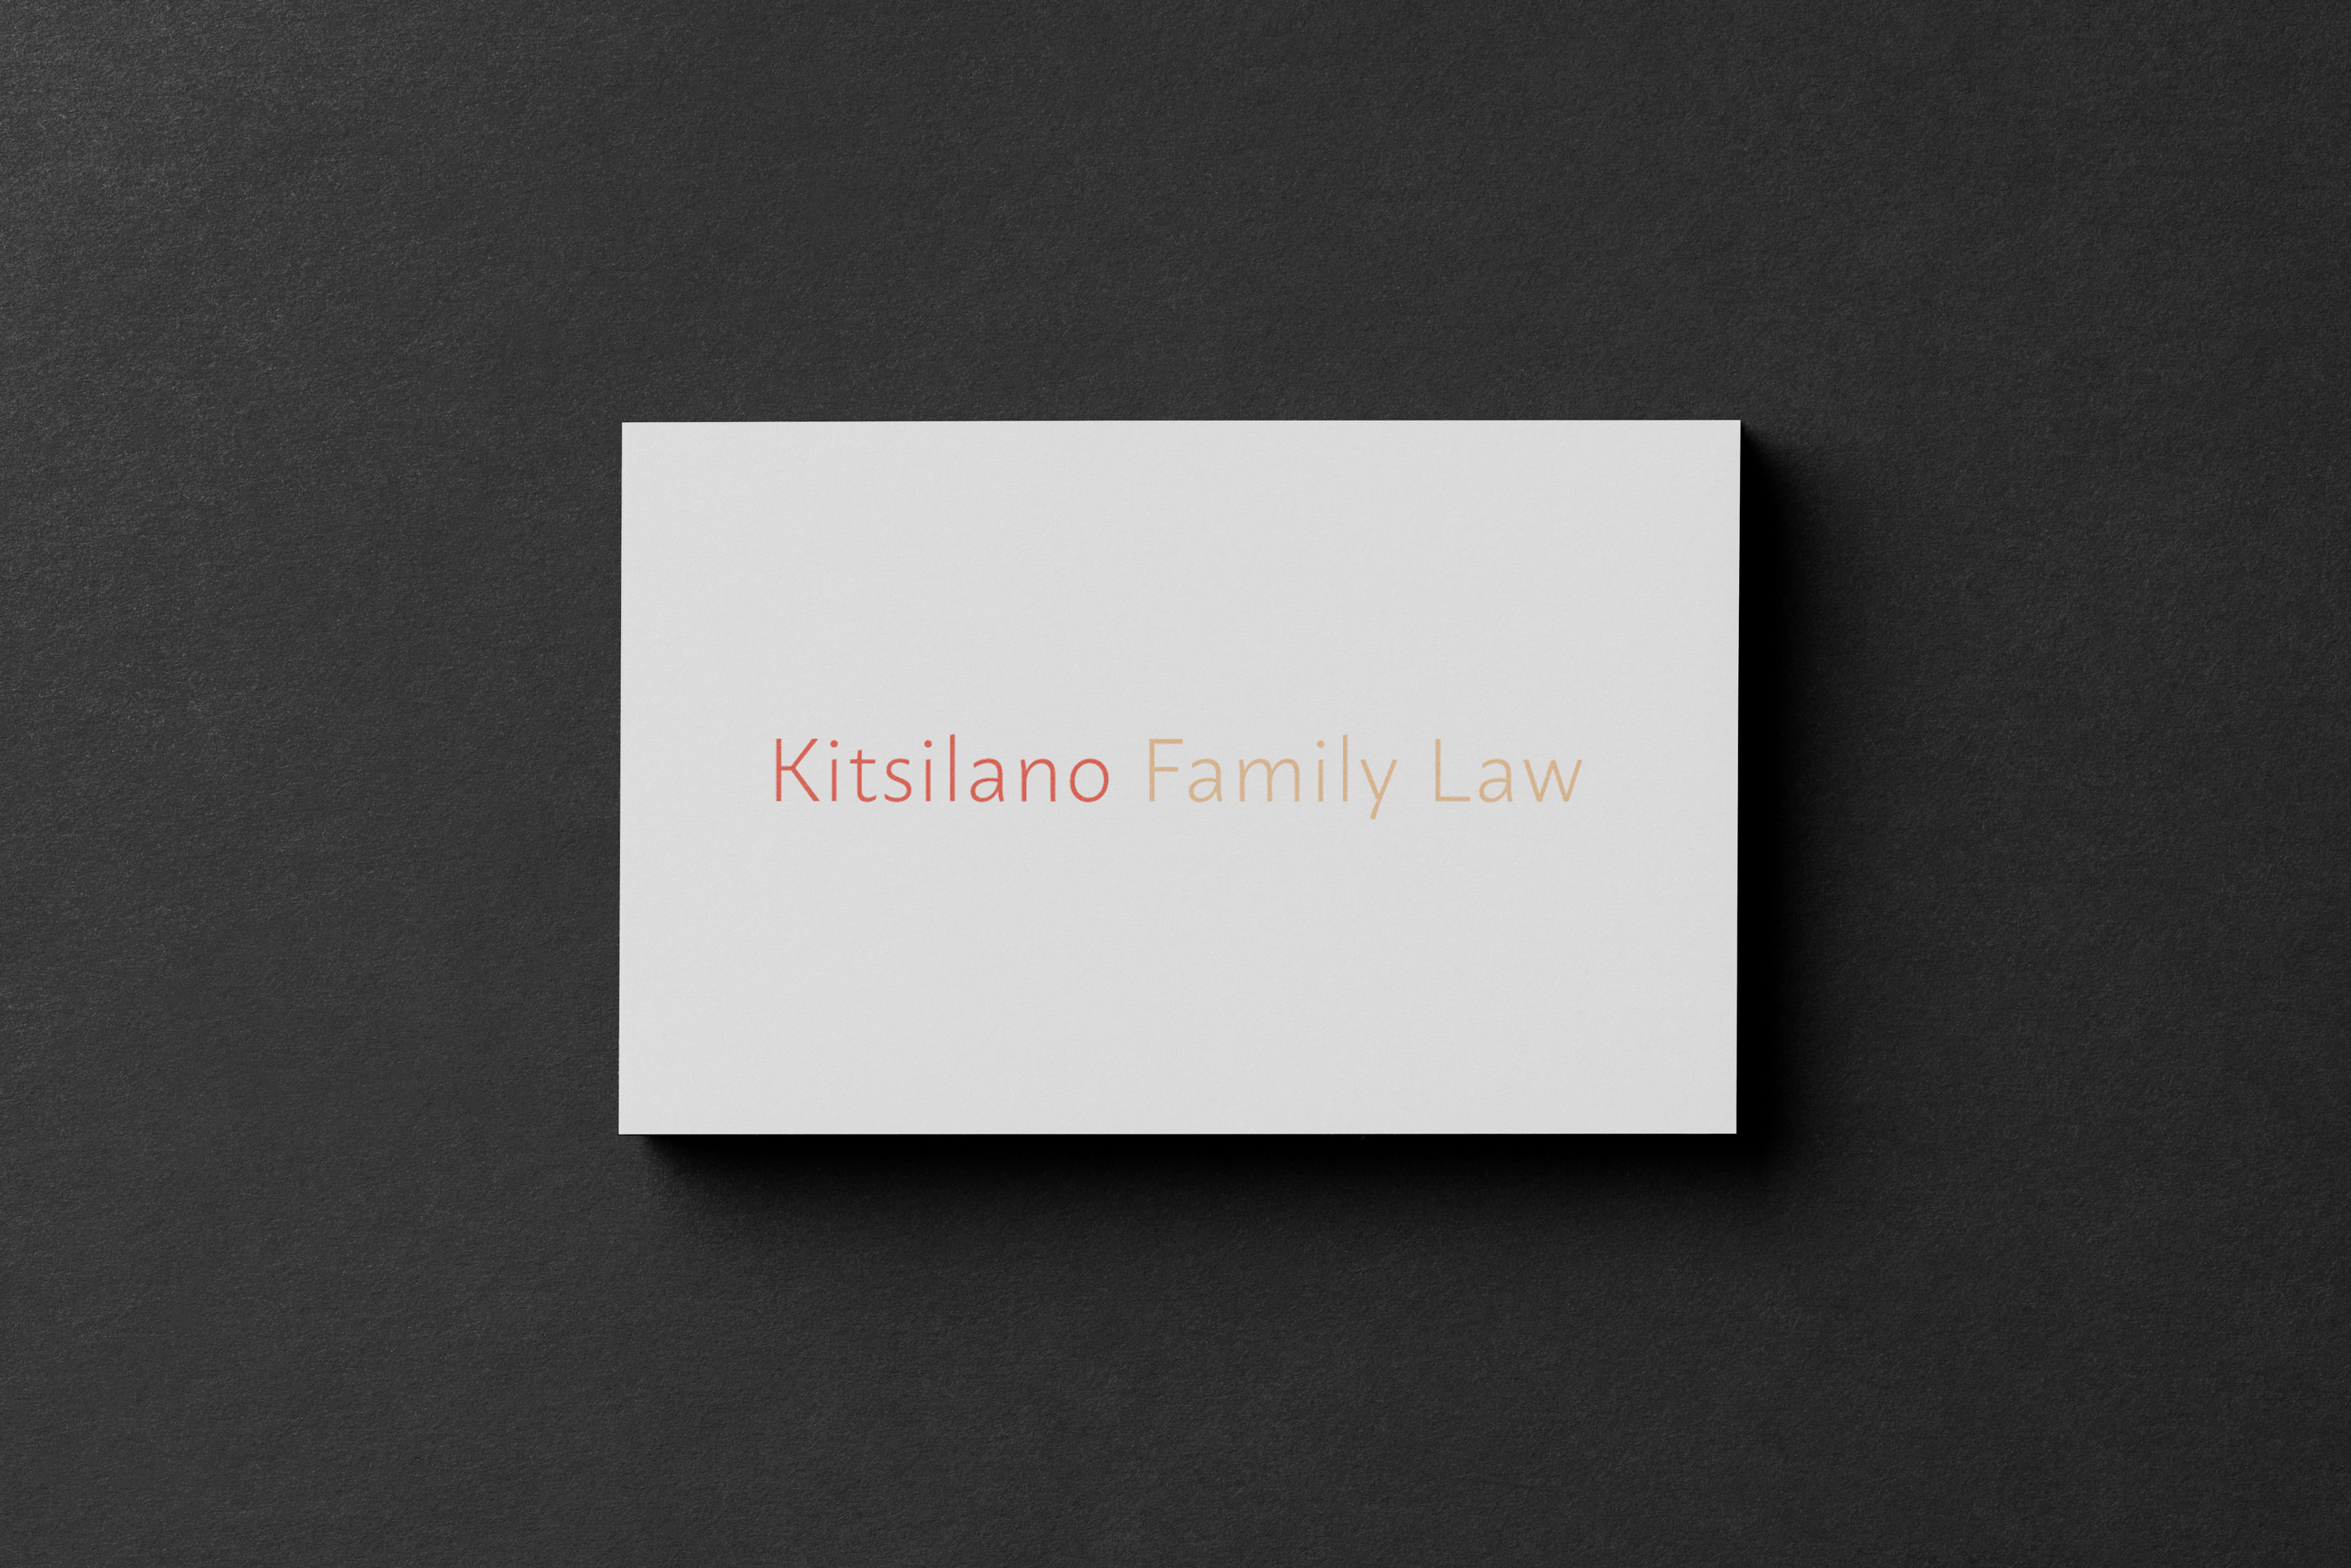 Siblings Creative Design Studio Kitsilano Family Law Business Card Front